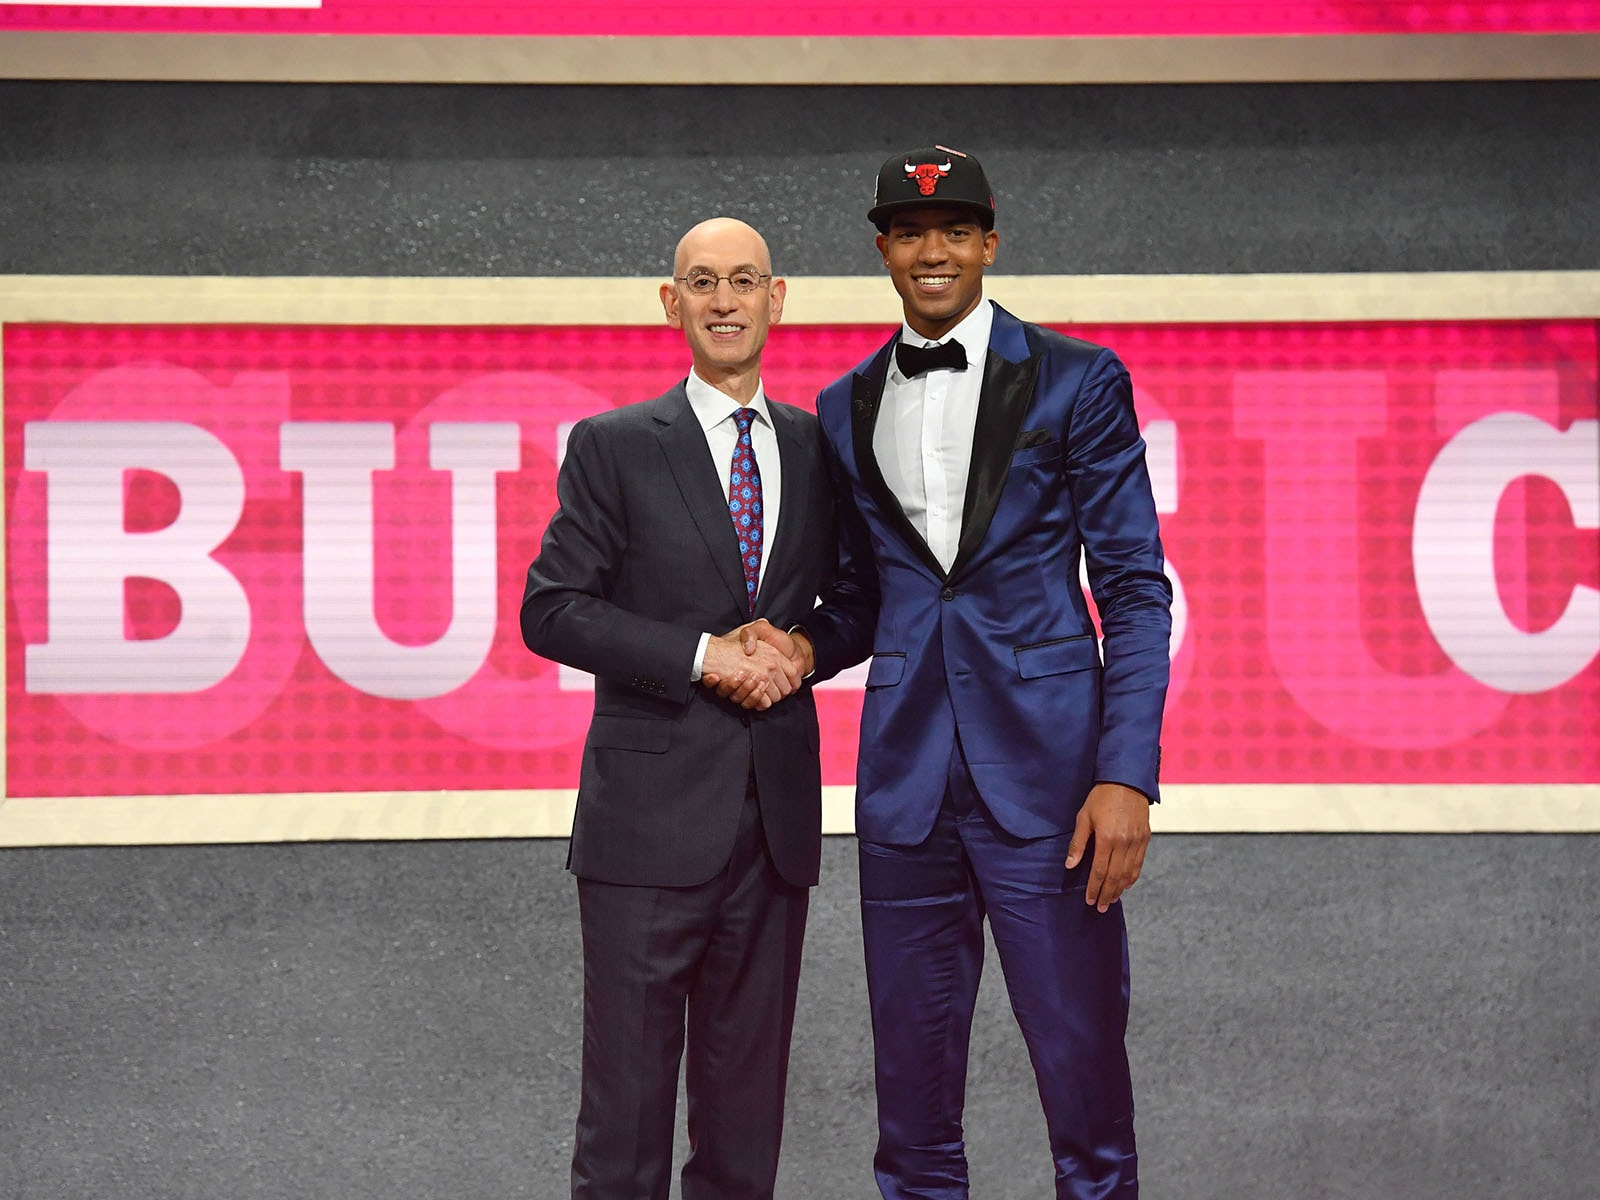 Chandler Hutchison at the 2018 NBA Draft